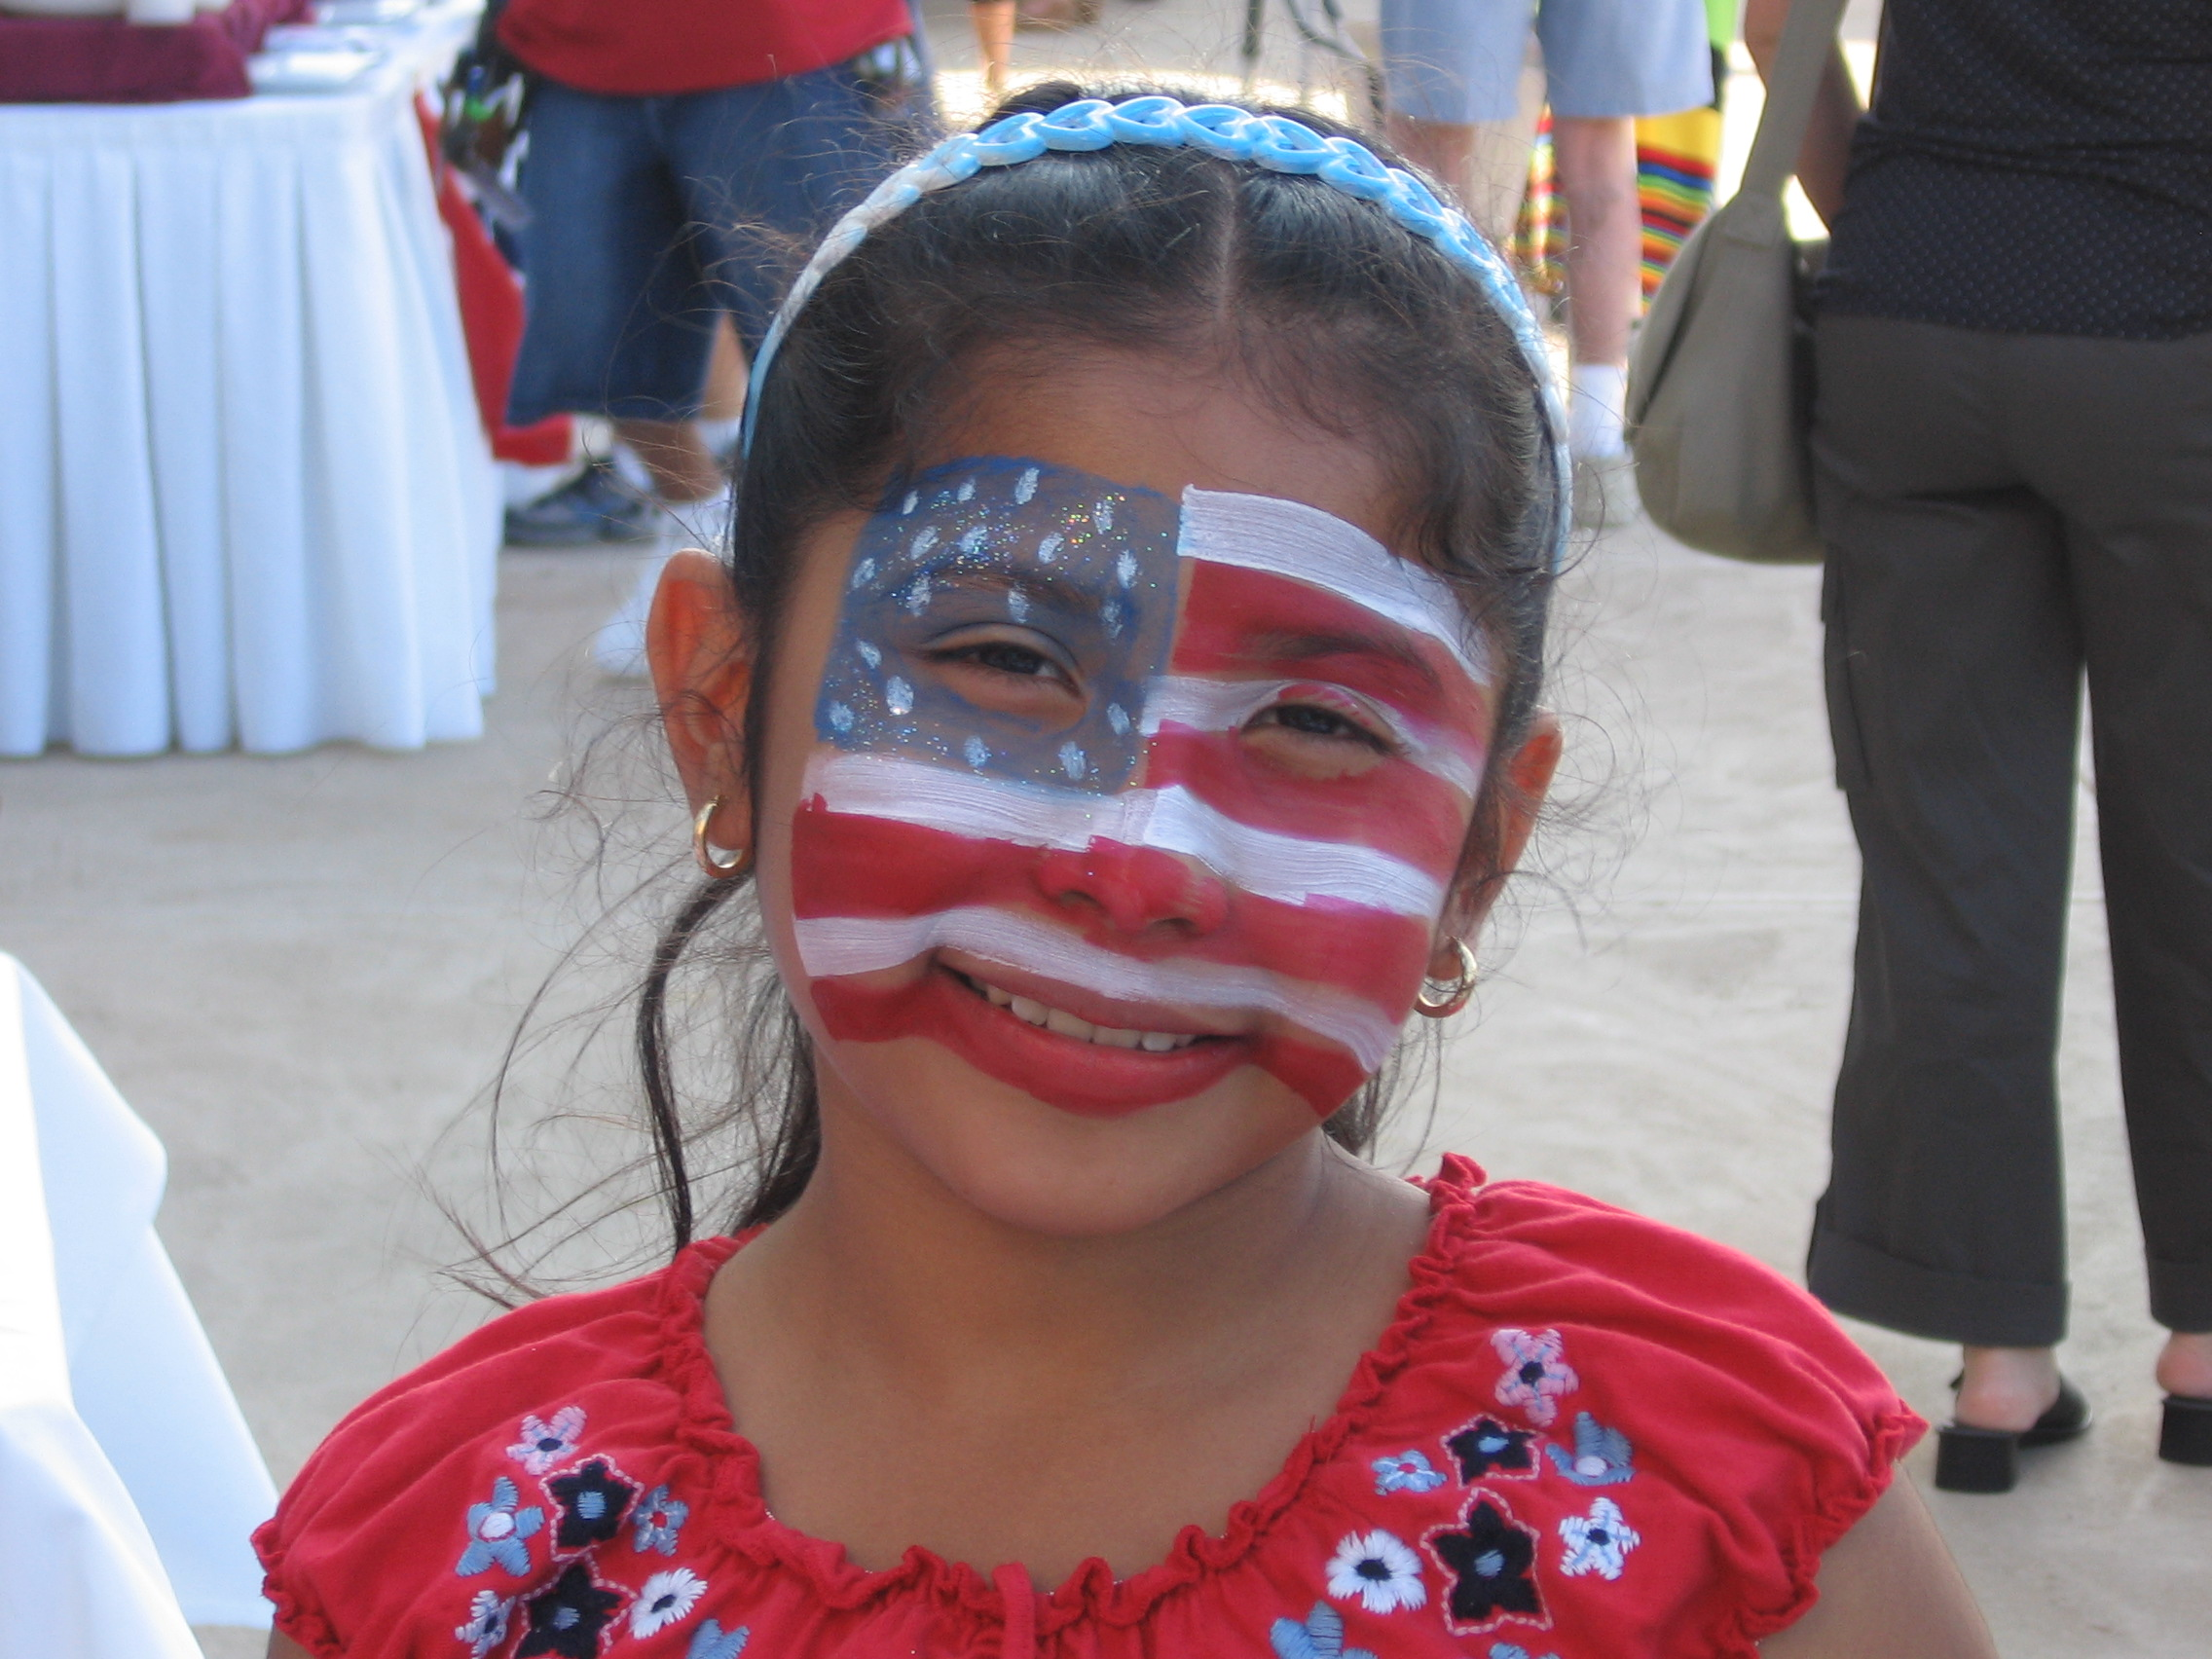 Patriotic little girl smiles!